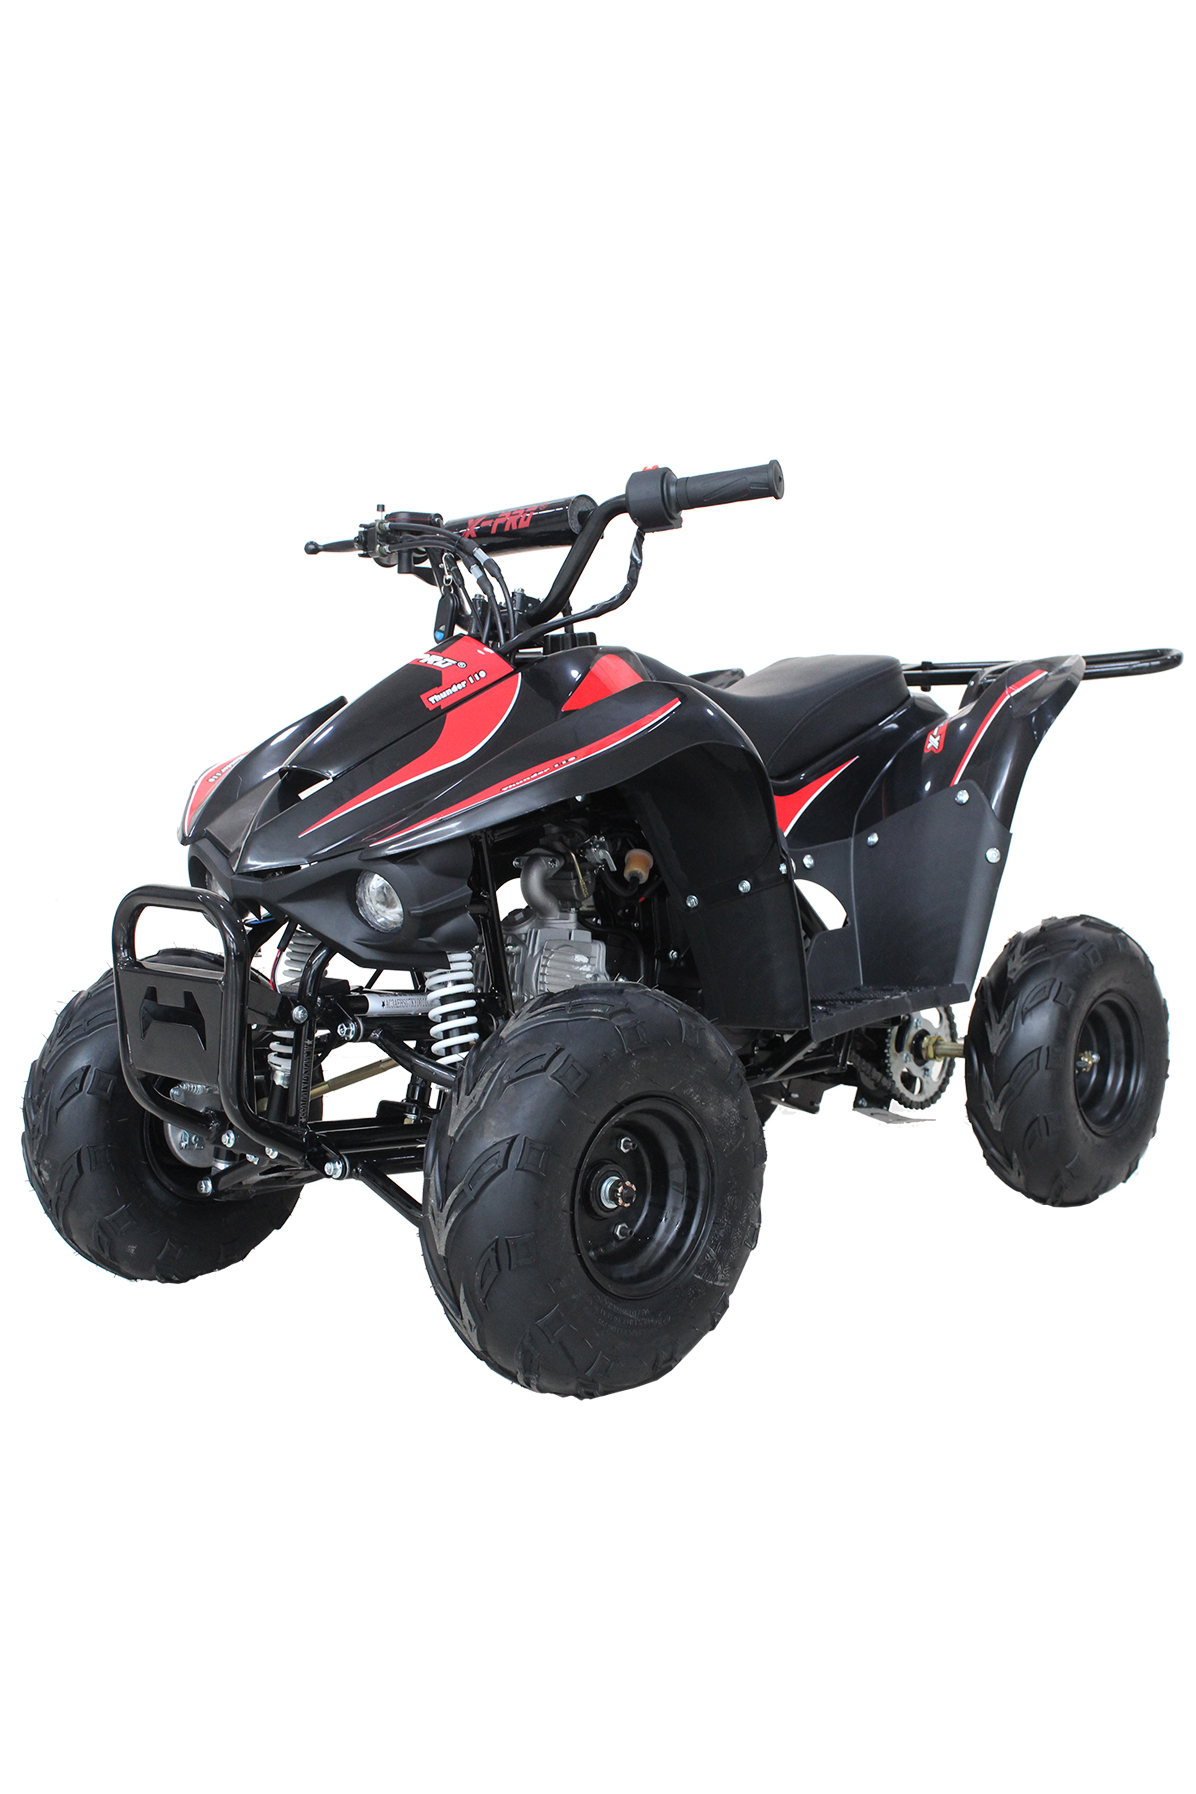 X Pro Thunder 110cc Atv With Automatic Transmission Electric